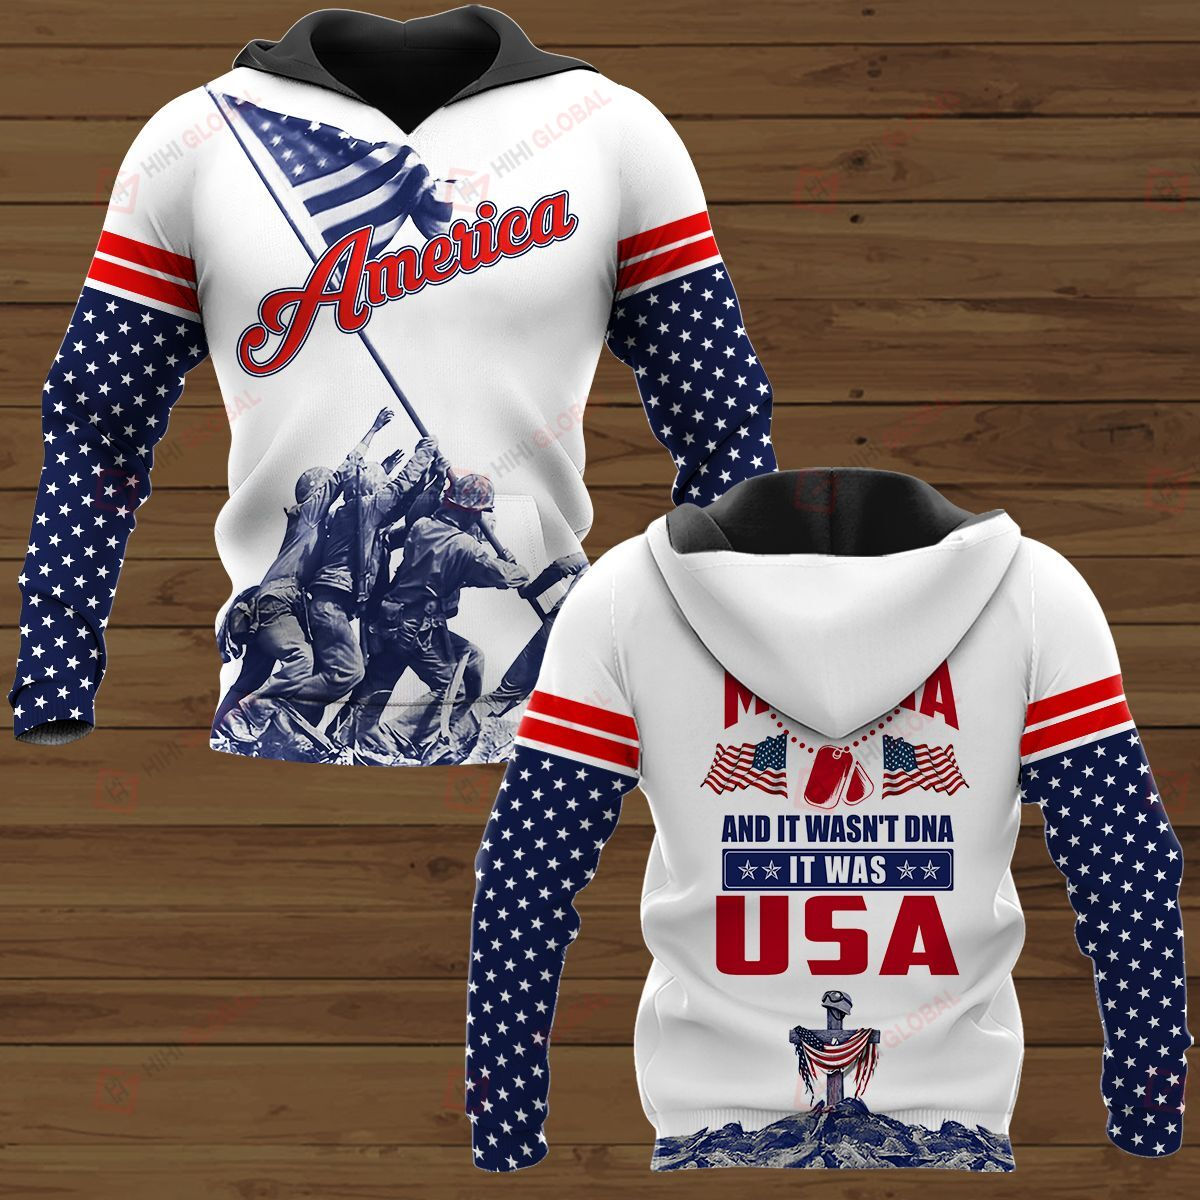 3D Shirt They tested my DNA It was USA American Soldier